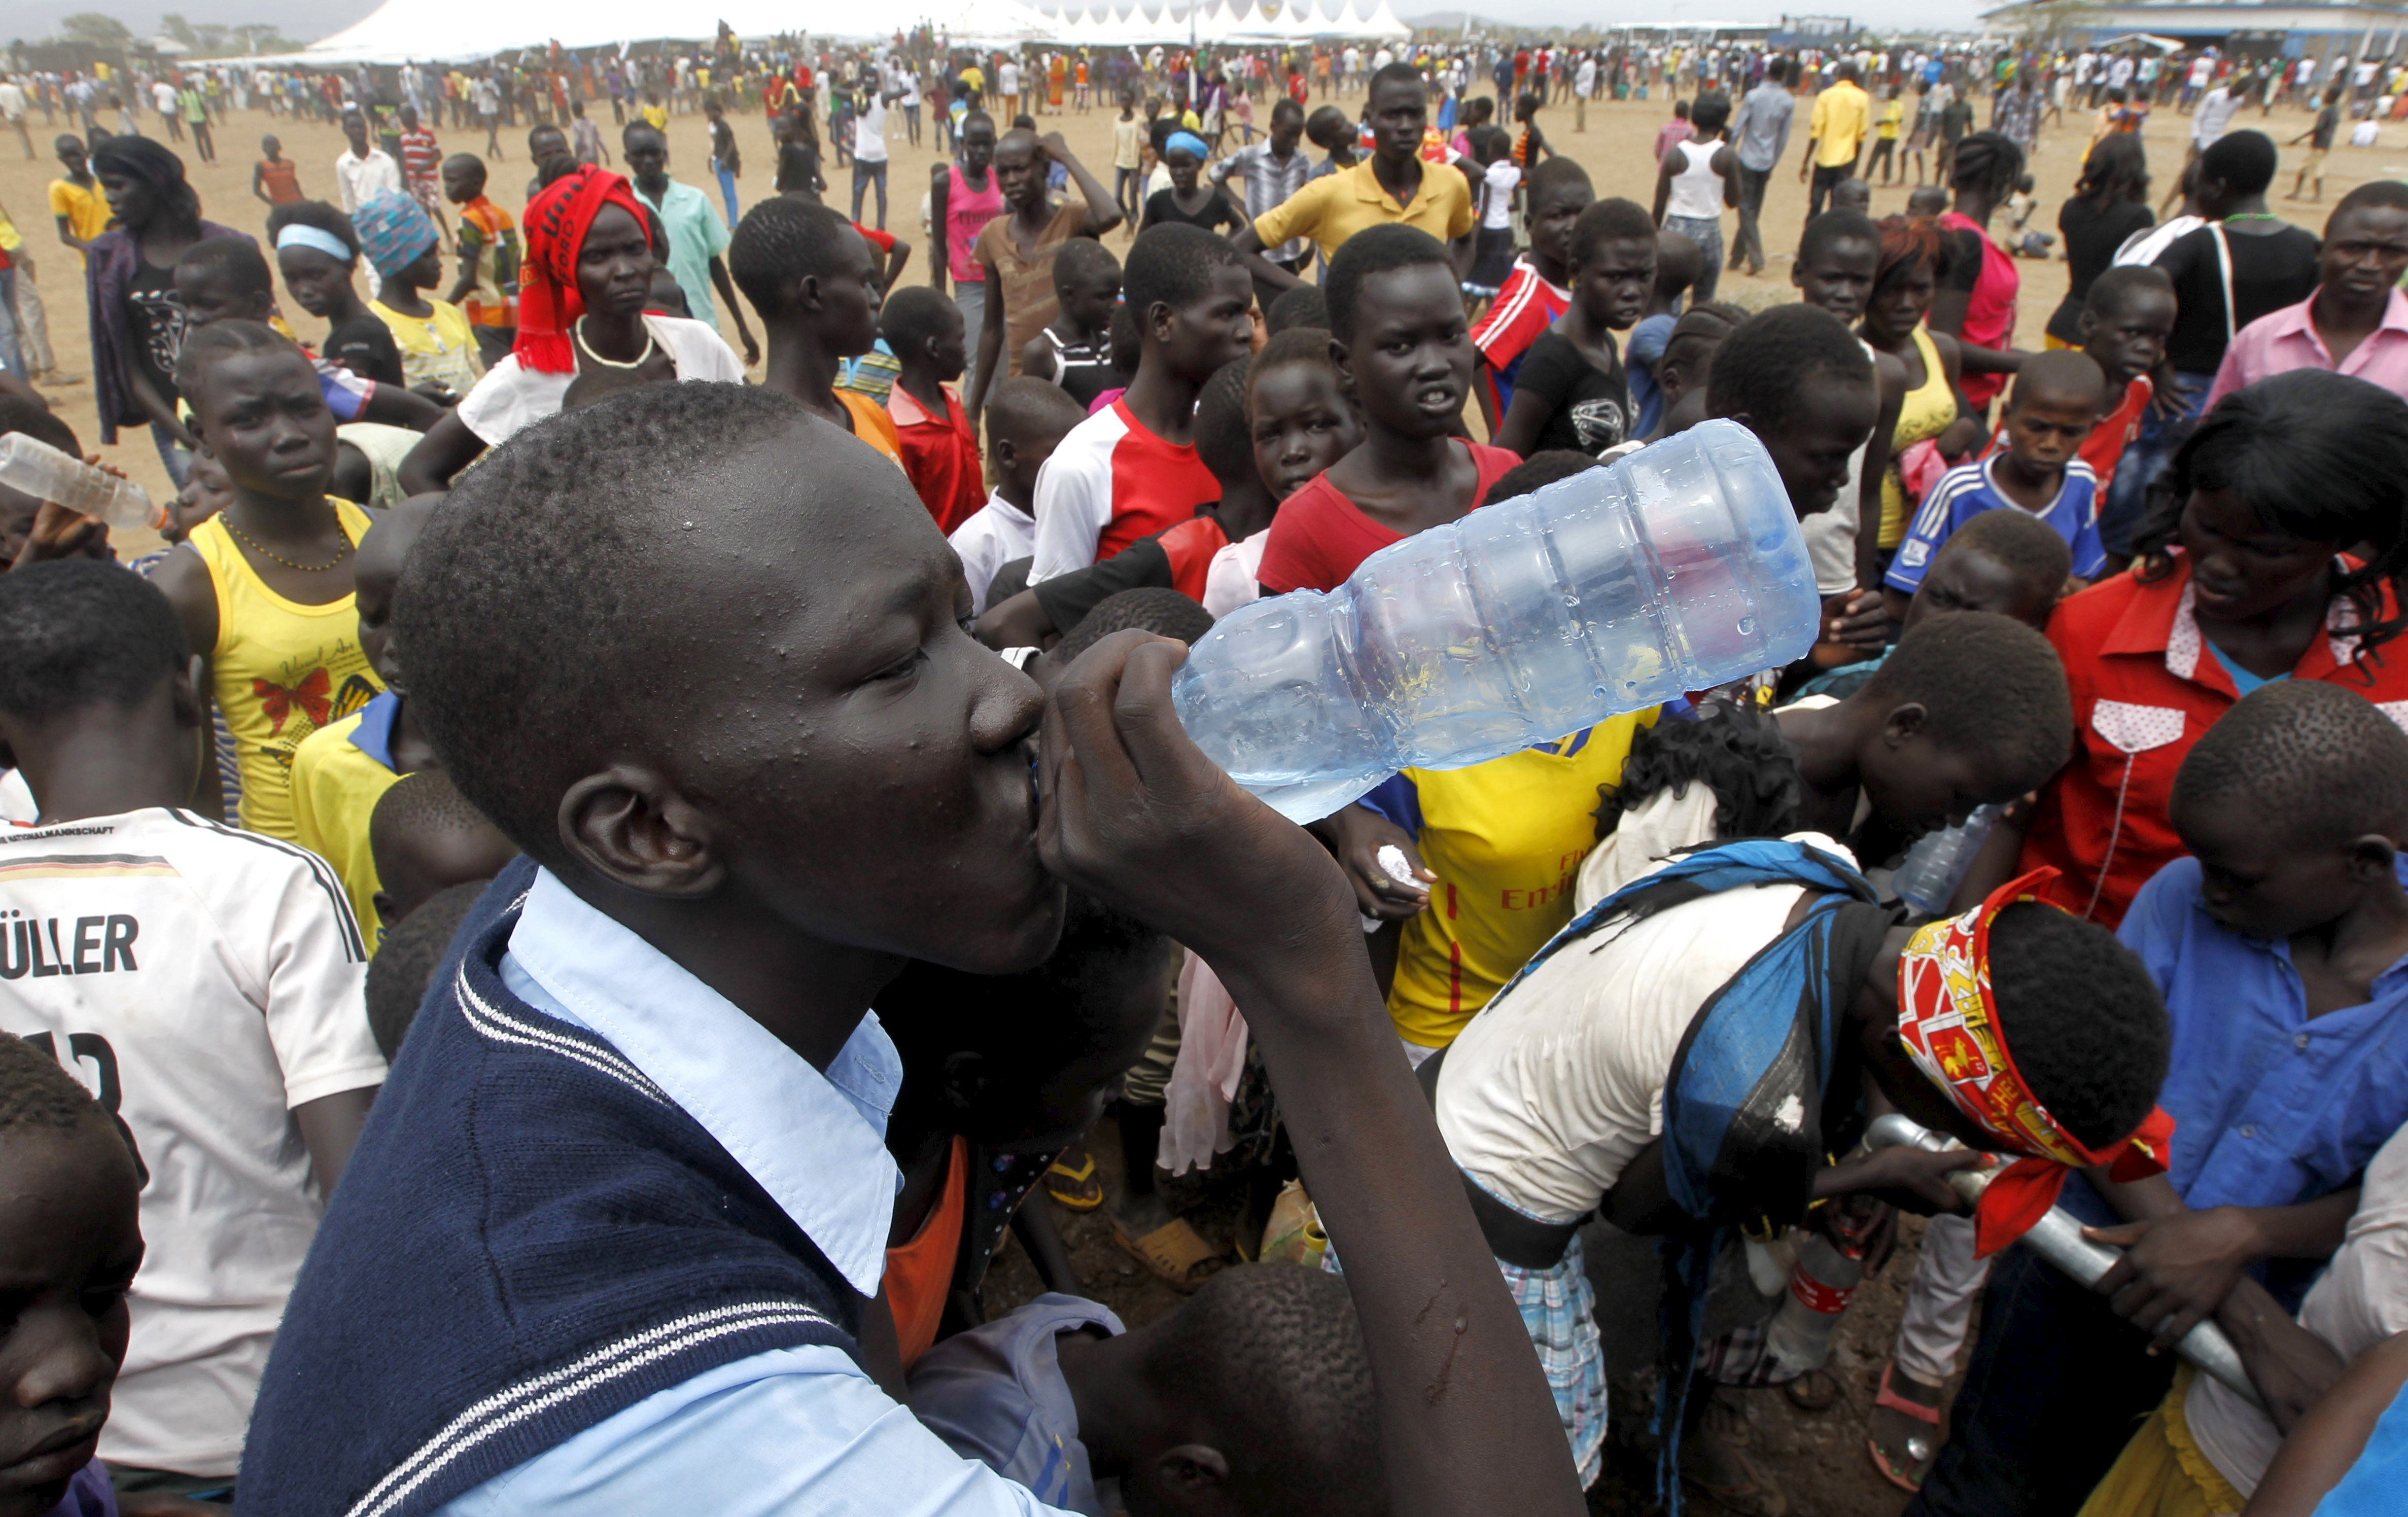 A refugee from South Sudan drinks water at a well during celebrations to mark World Refugee Day at the Kakuma refugee camp in Turkana District, northwest of Kenya's capital Nairobi, June 20, 2015. June 20 is World Refugee Day, an occasion that draws attention to those who have been displaced around the globe. REUTERS/Thomas Mukoya - GF10000134335